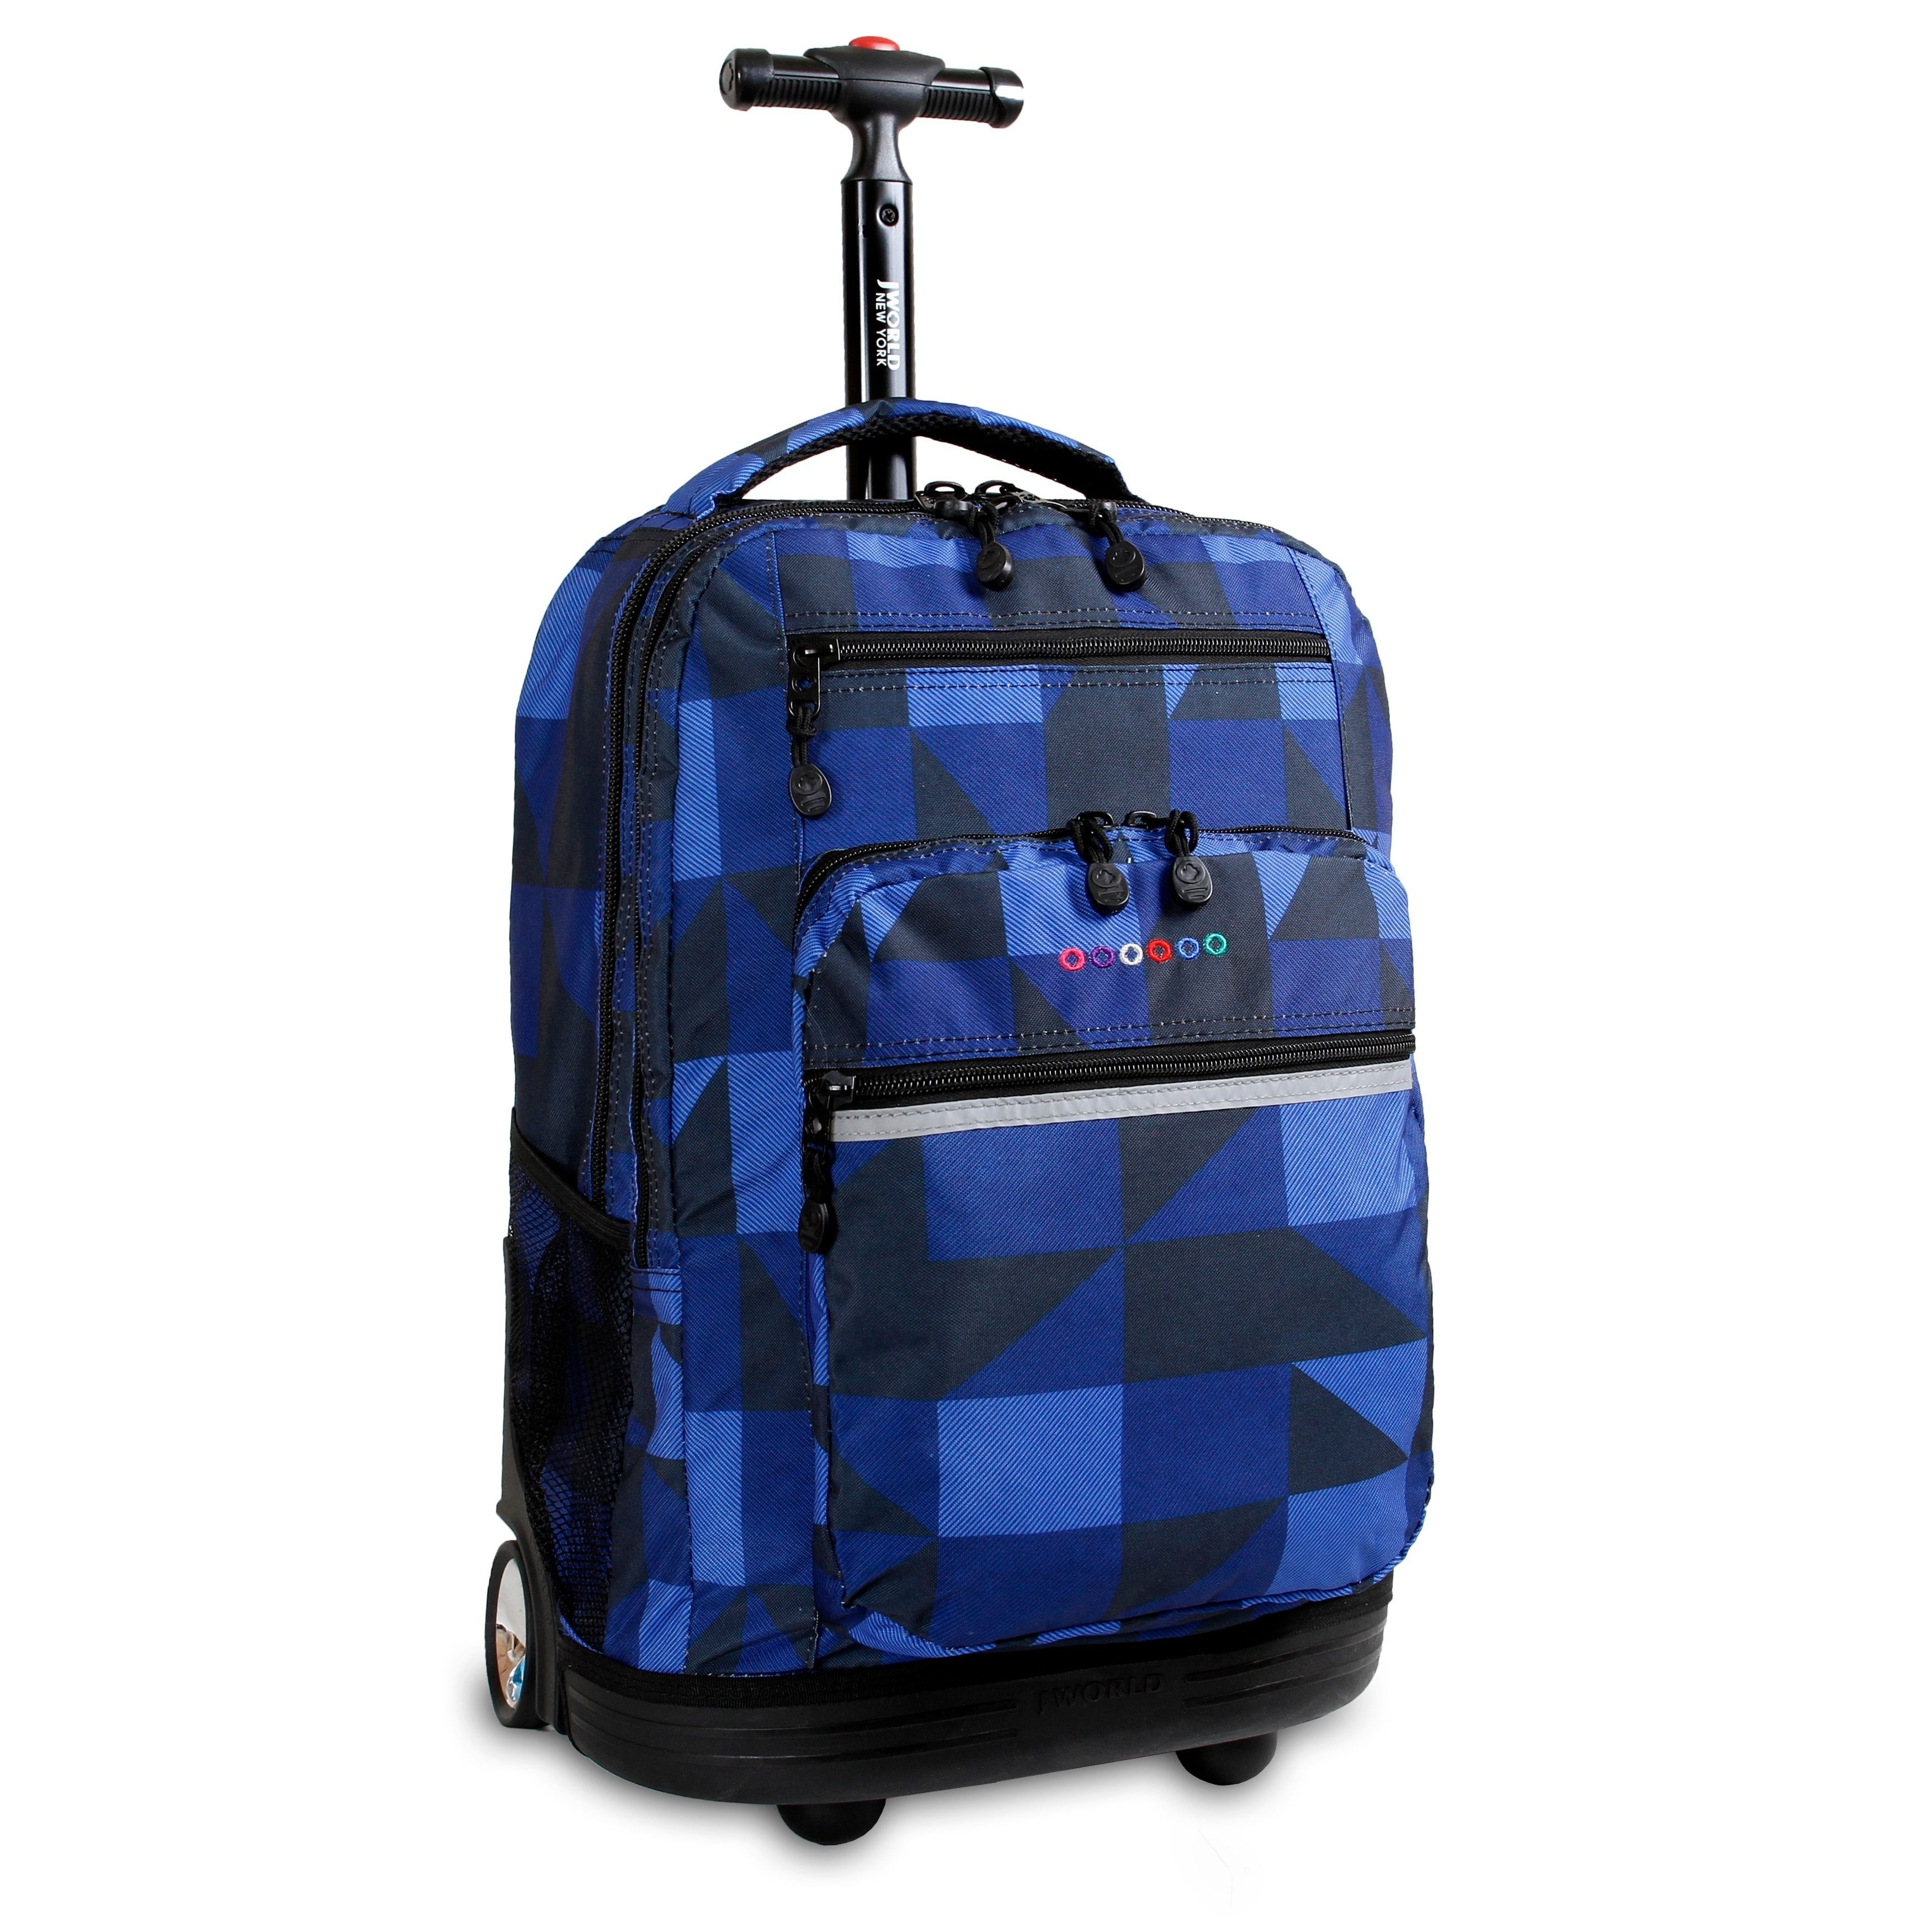 2122903c0fc7 Around The World Travel Backpack- Fenix Toulouse Handball